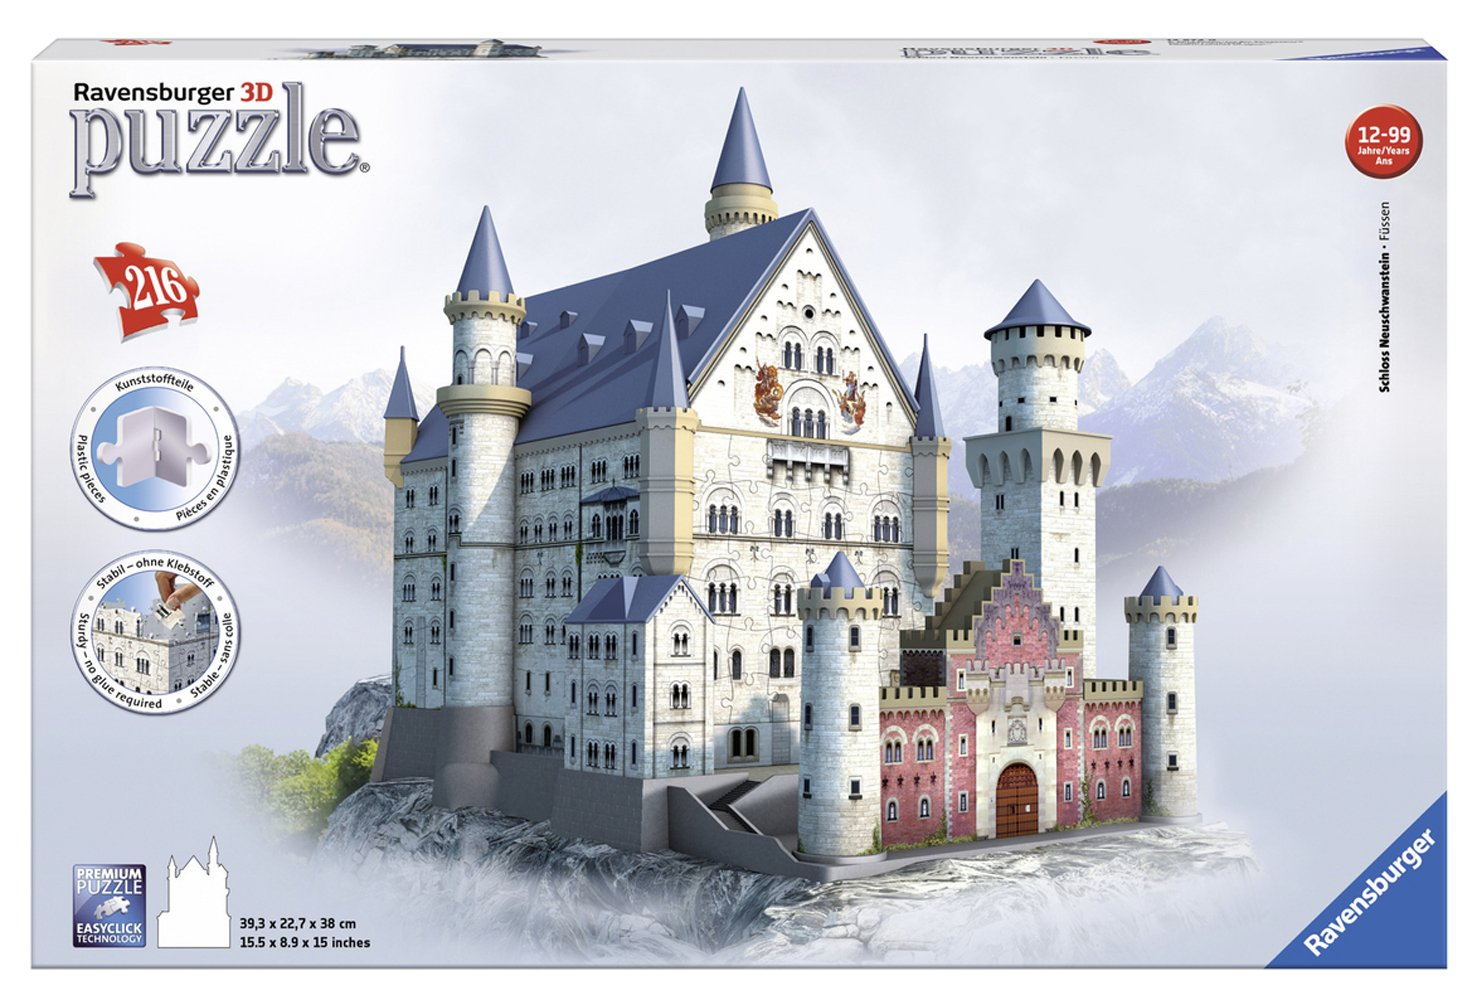 dce27c9e564 Get Quotations · Ravensburger Neuschwanstein 216 Piece 3D Jigsaw Puzzle for  Kids and Adults - Easy Click Technology Means